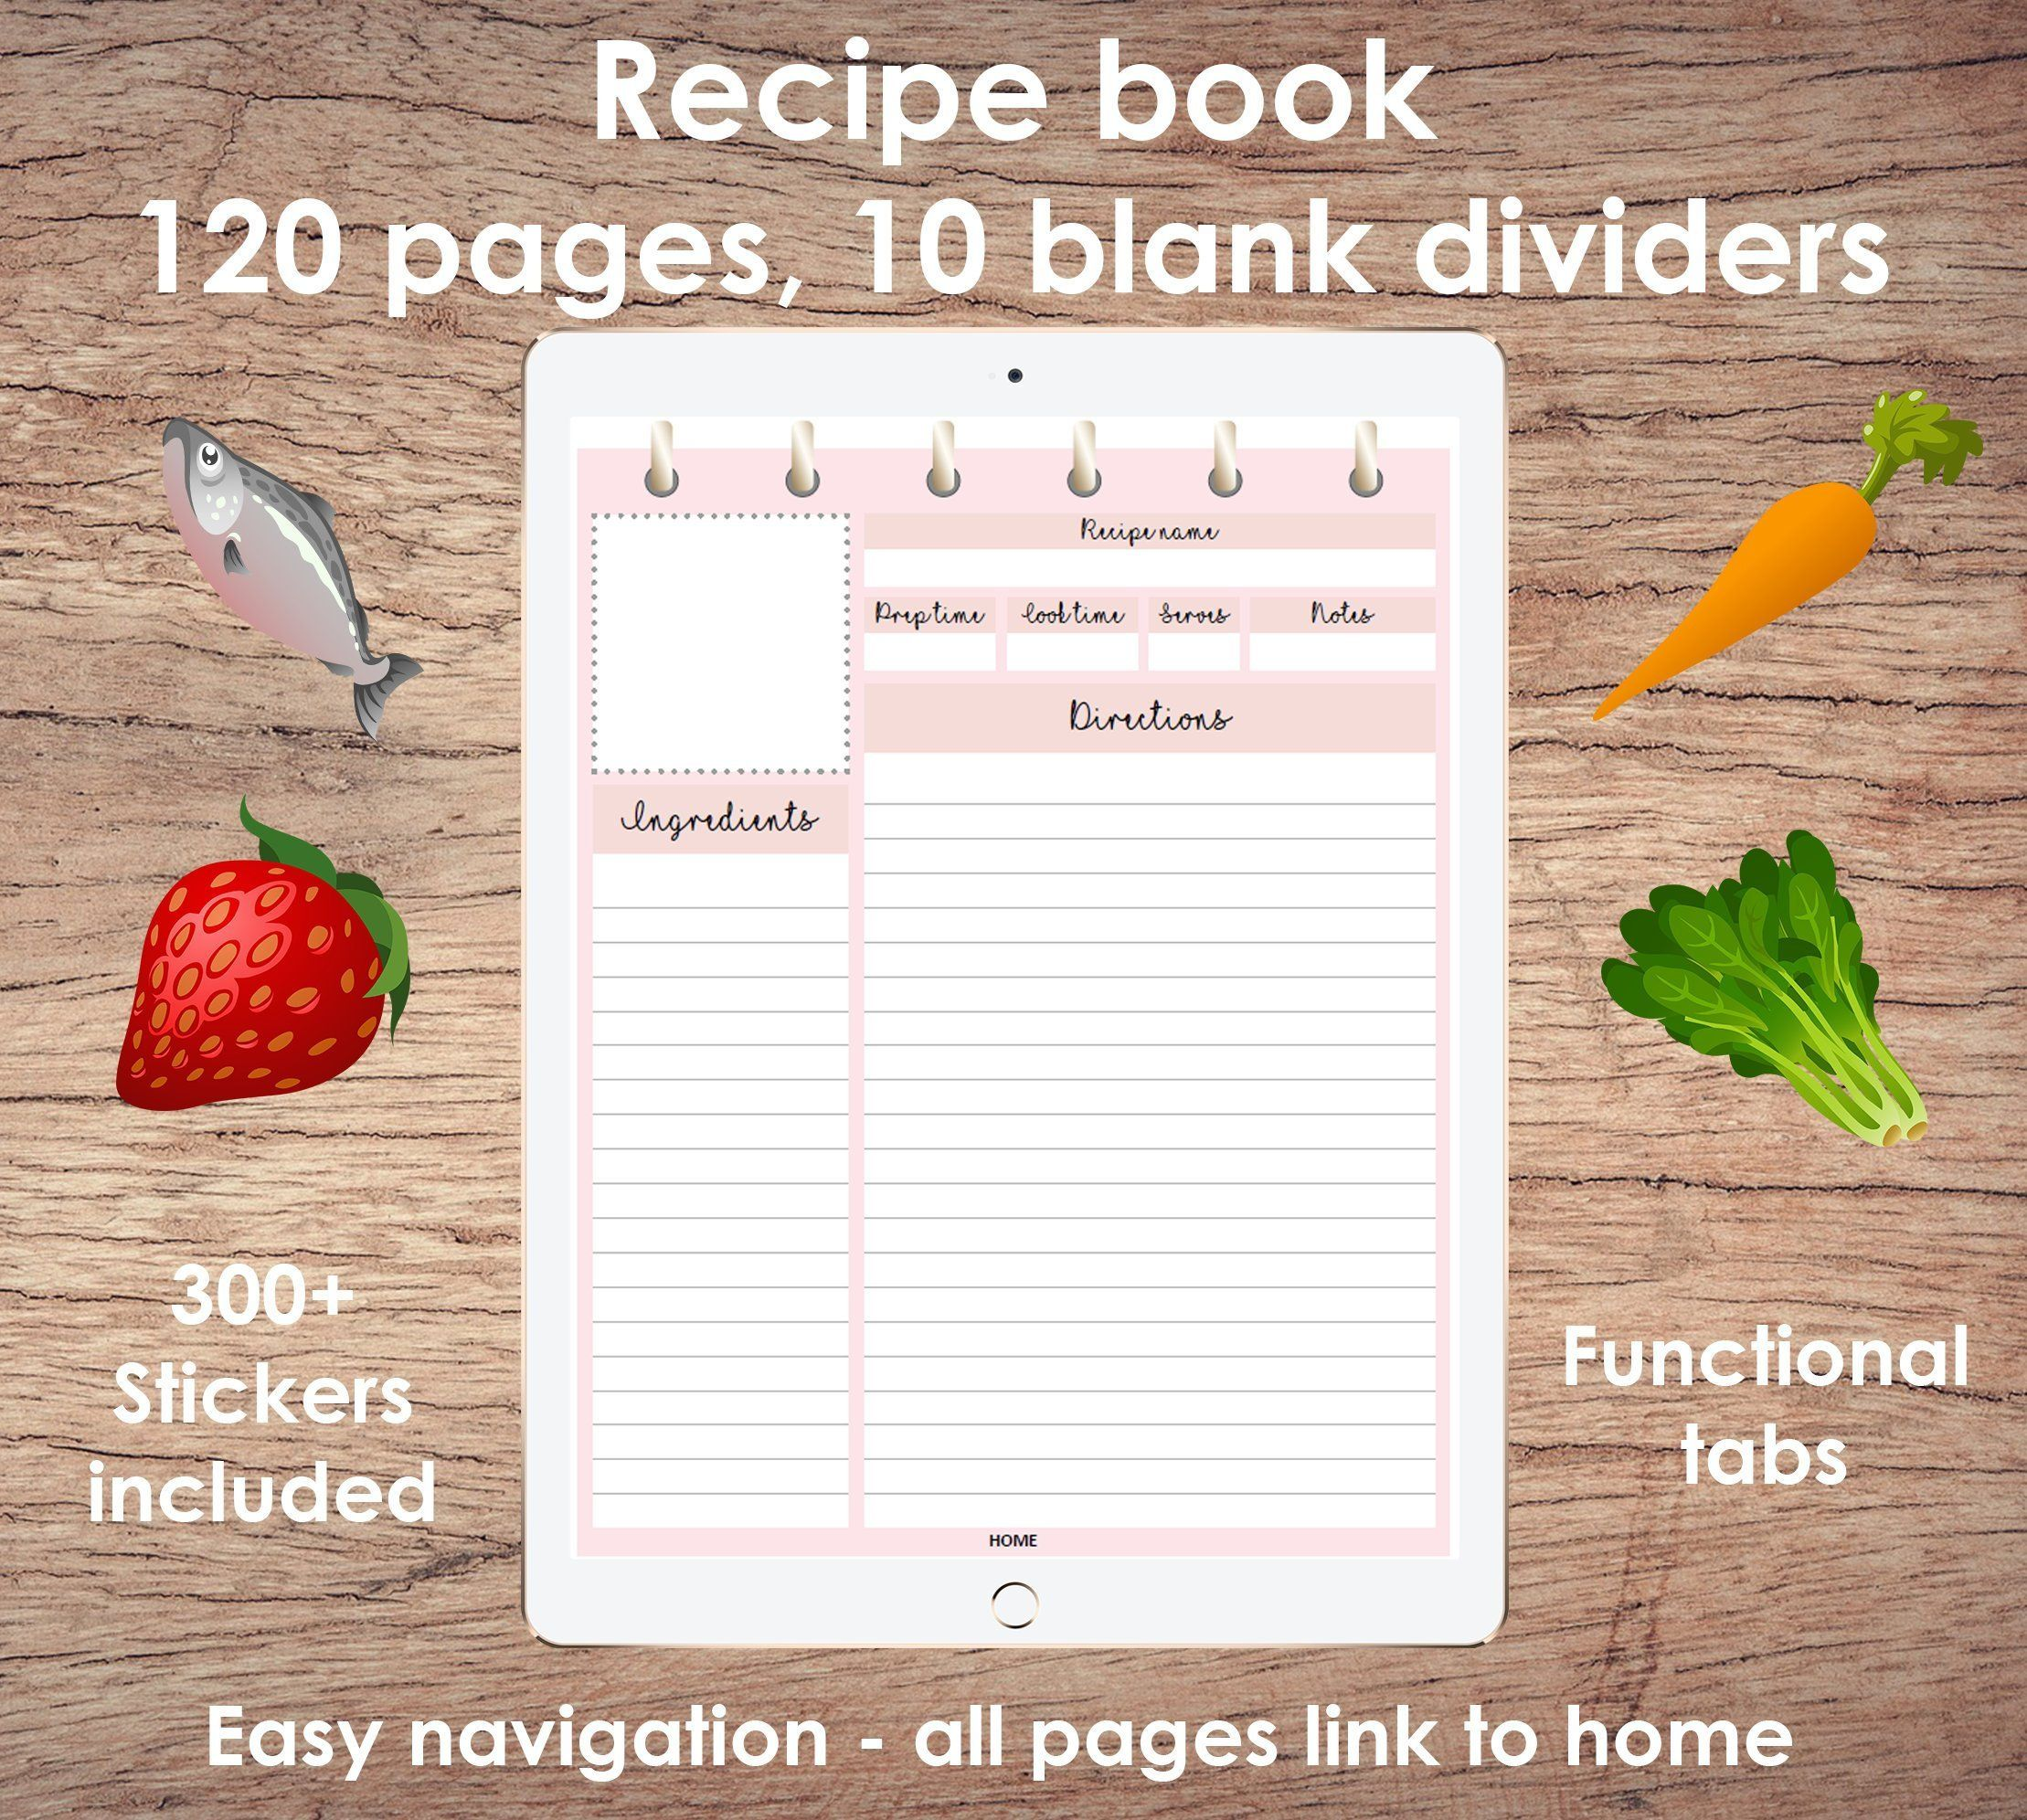 Digital Recipe Book For Goodnotes App On Ipad Digital Recipe Book Recipe Book Digital Planner